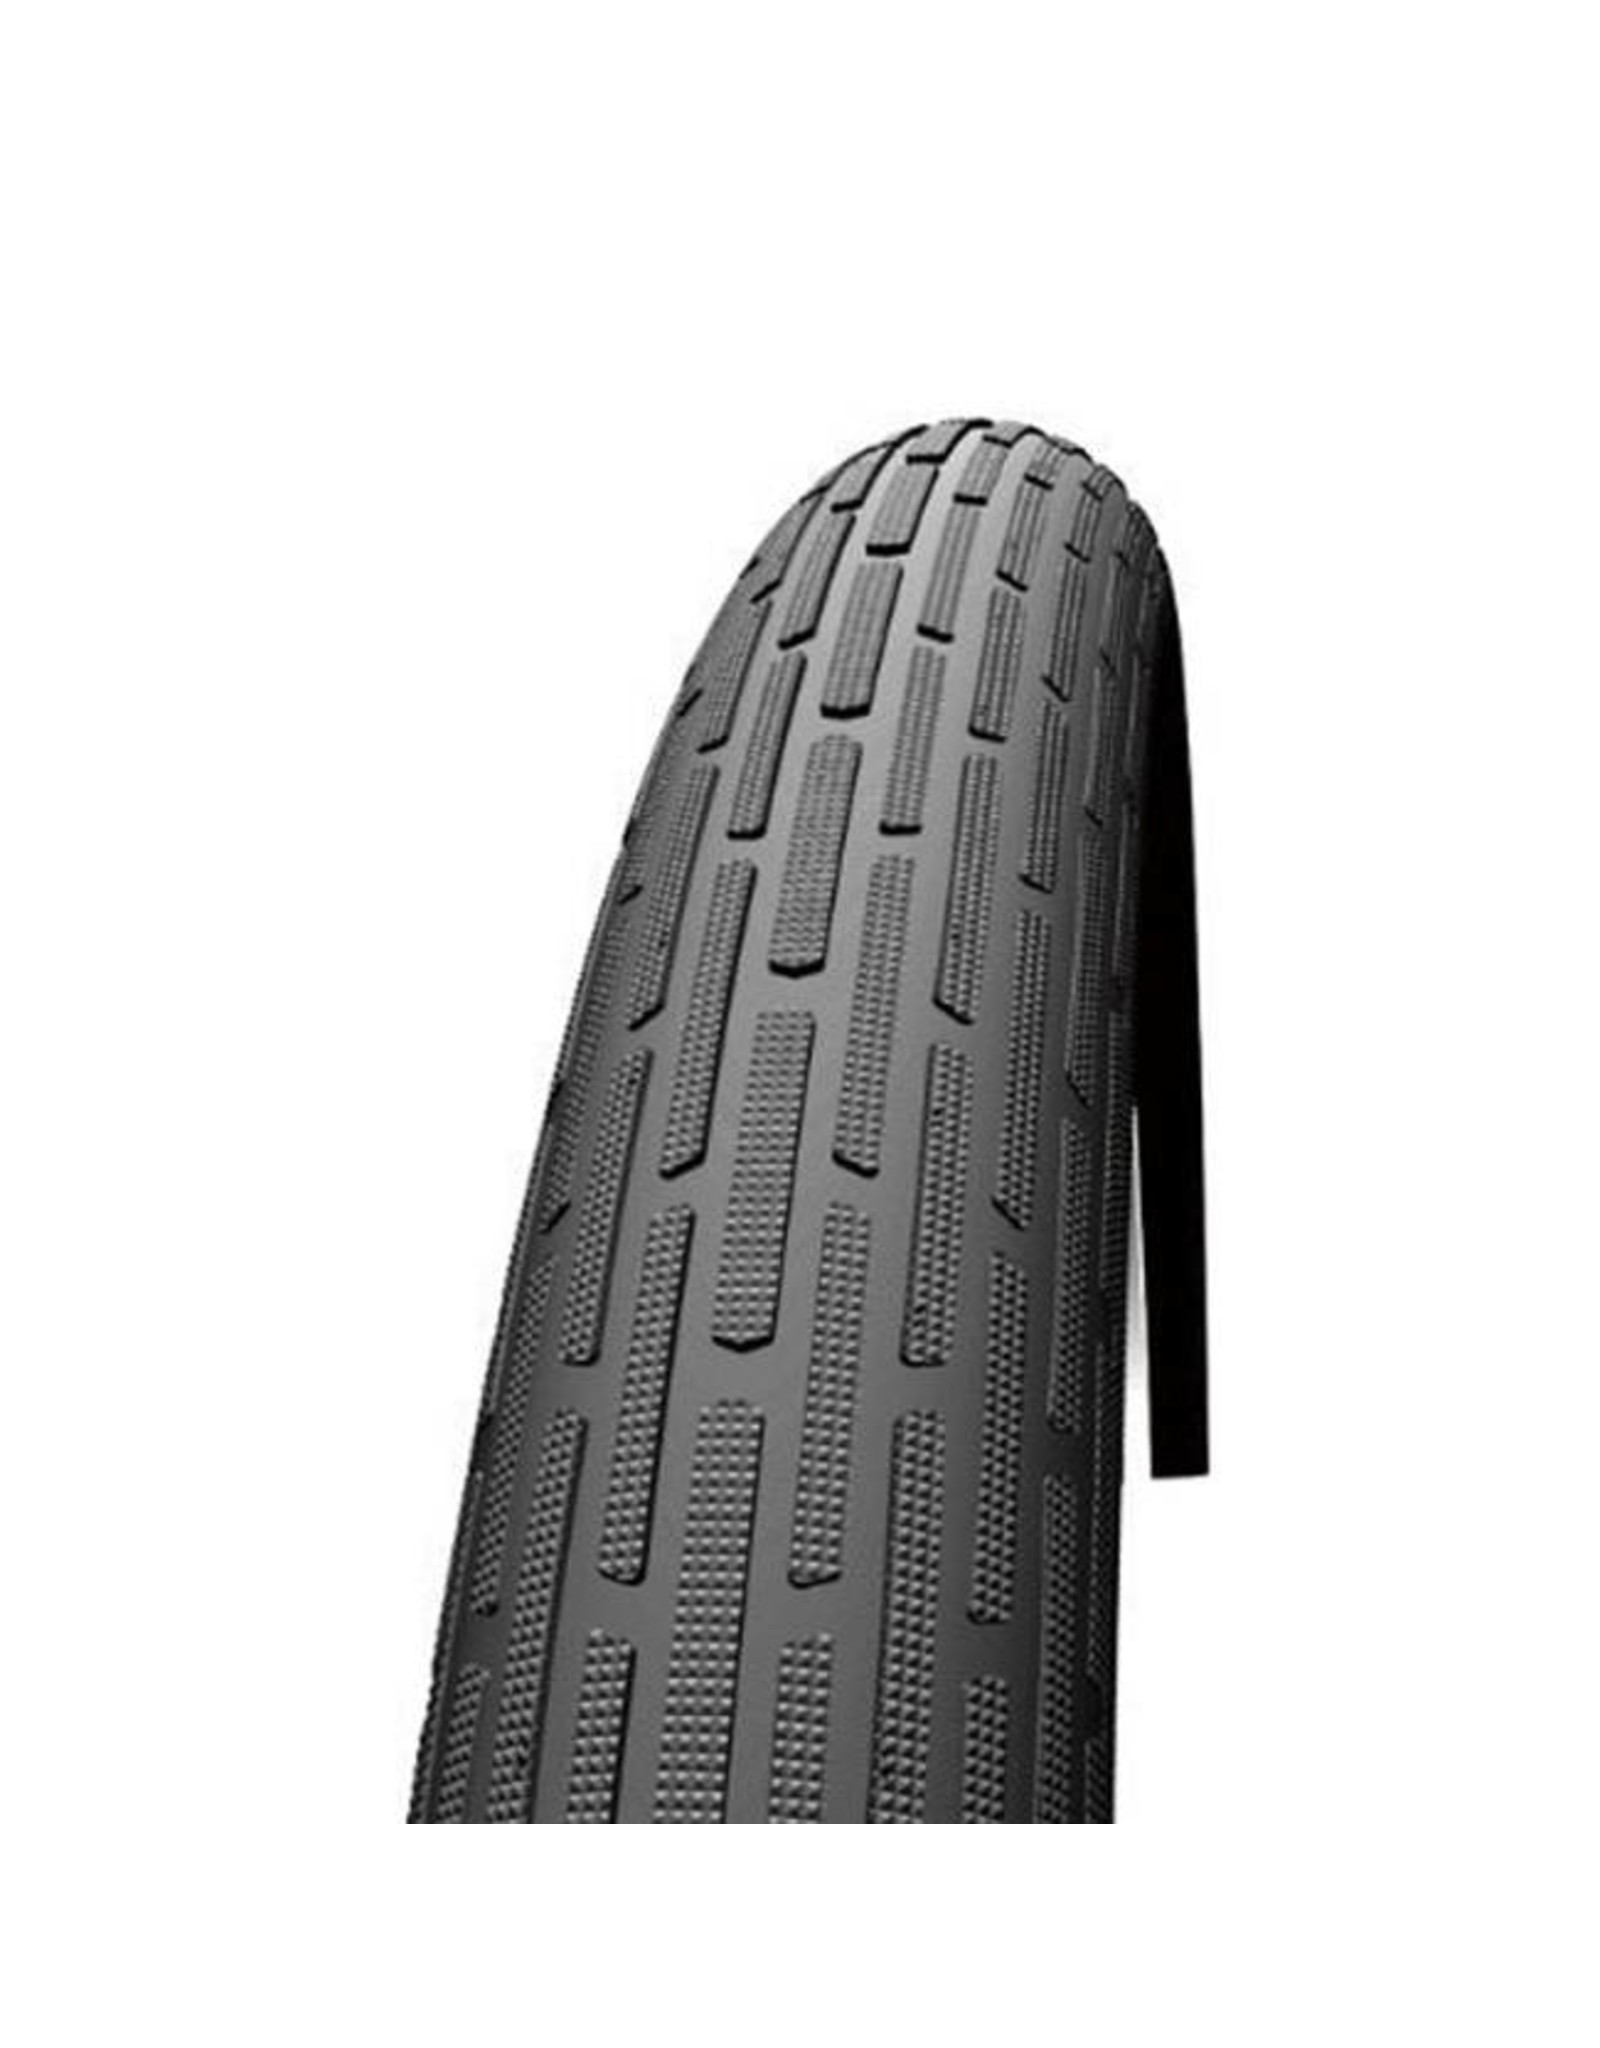 "Schwalbe Schwalbe Fat Frank Tire: 29 x 2.00"", Wire Bead, Active Line, Basic Compound, K-Guard, Black/Reflect"